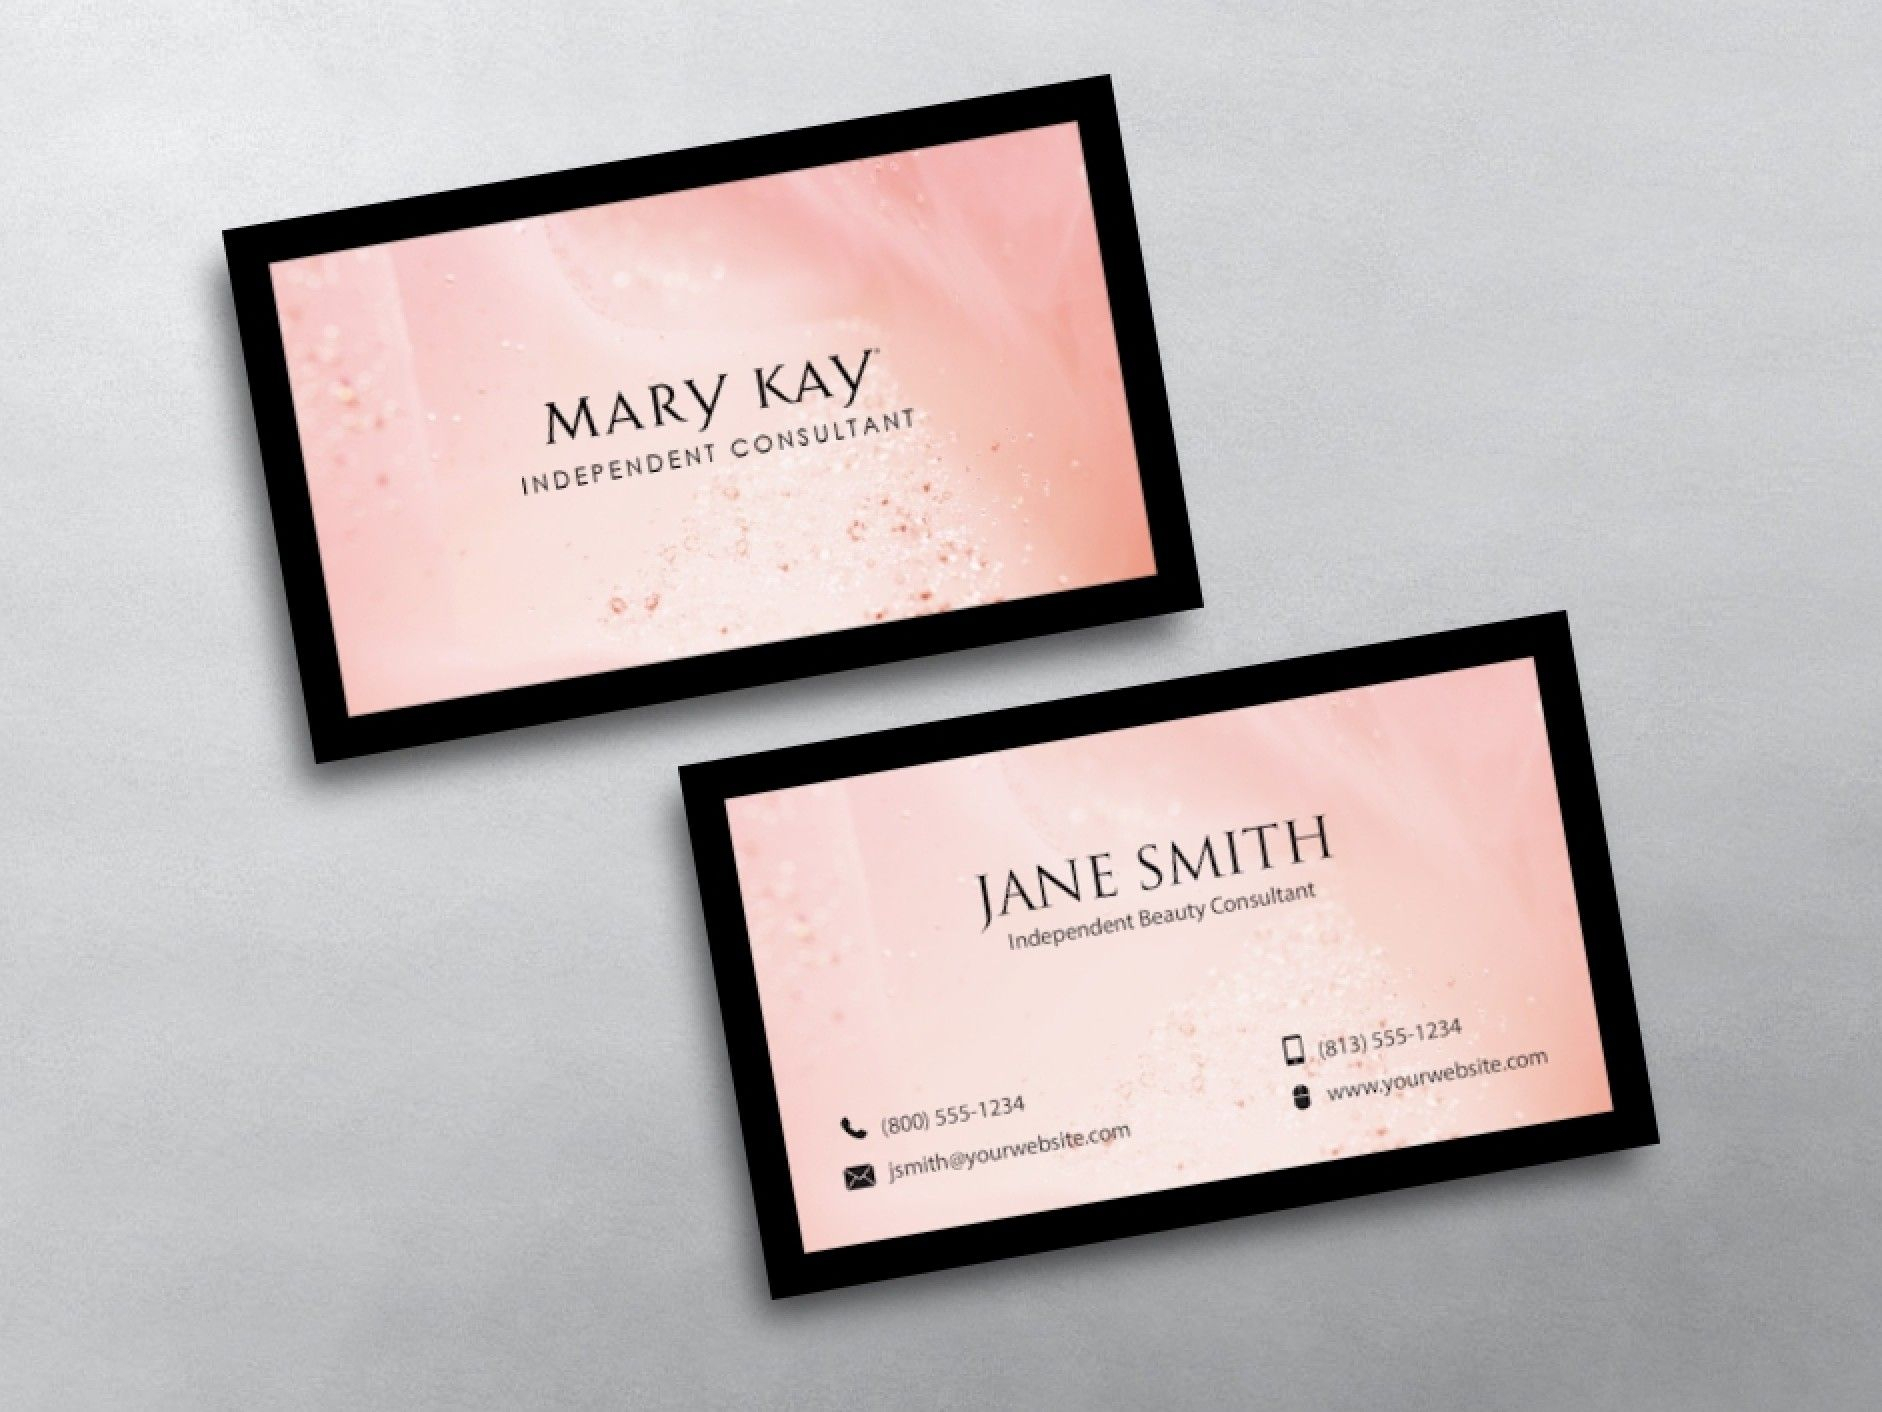 Mary Kay Business Cards In 2019 | Mary Kay, Business Card Throughout Mary Kay Business Cards Templates Free